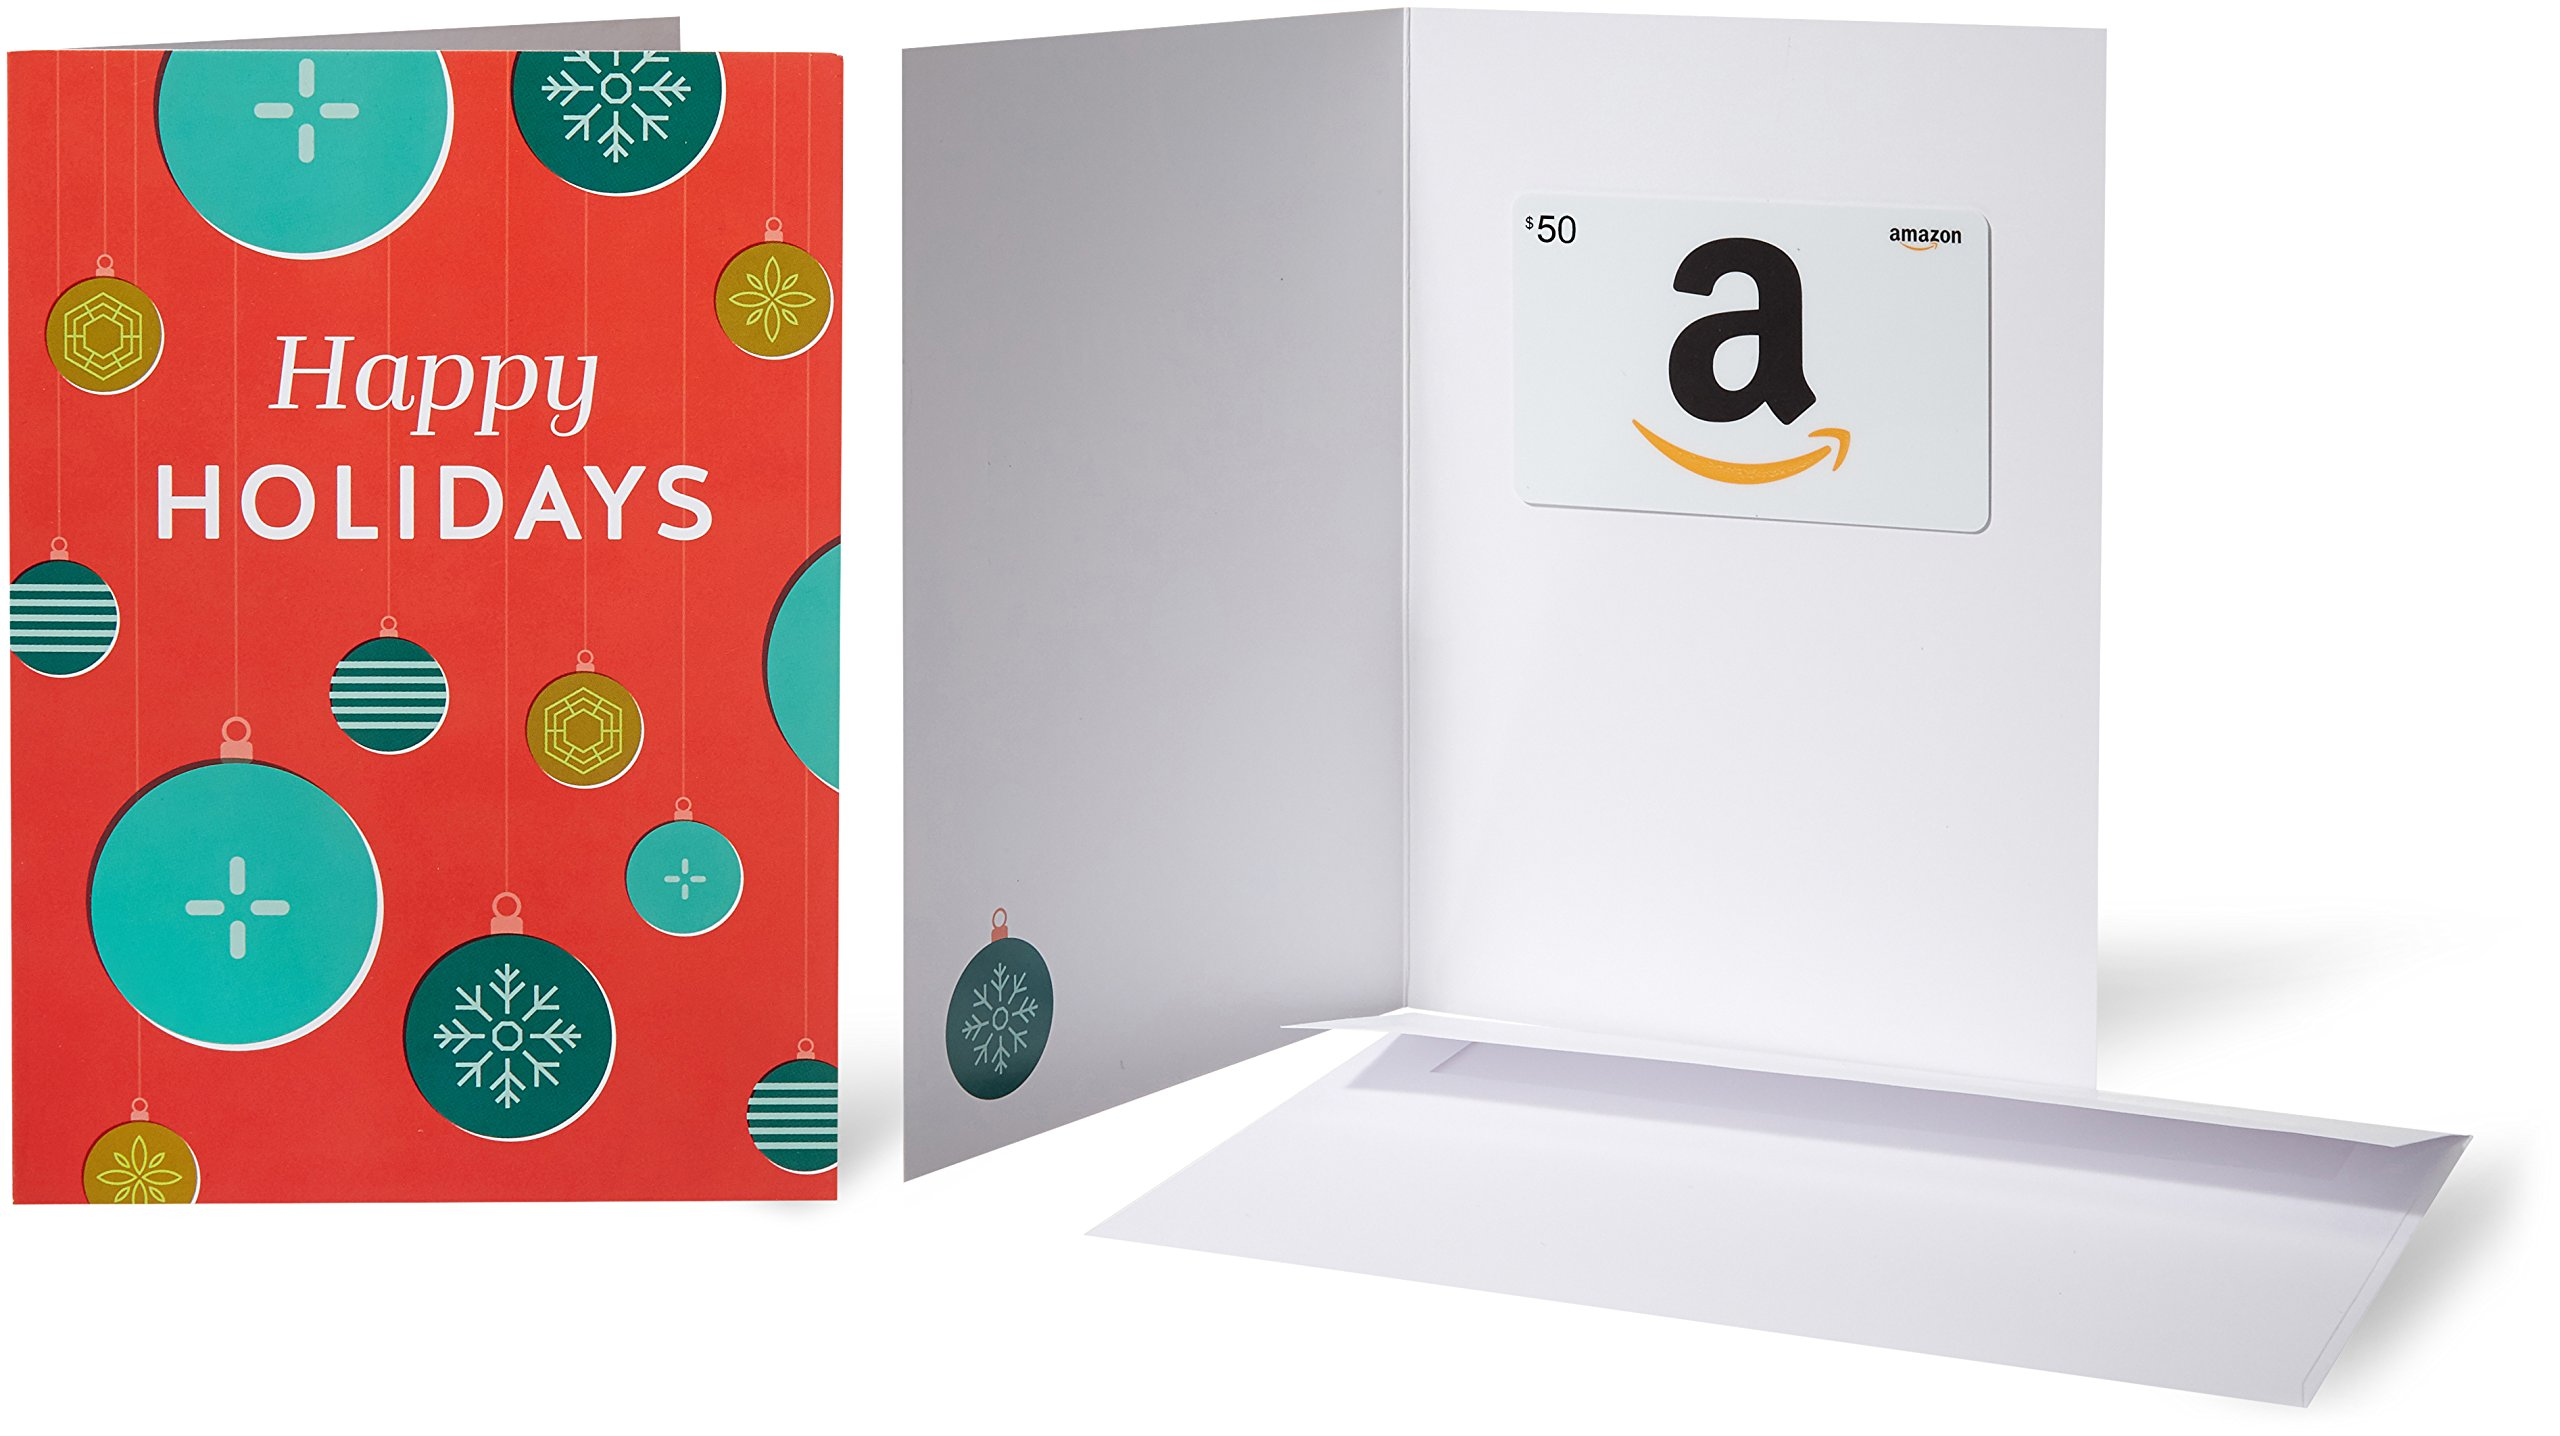 Amazon.com $50 Gift Card in a Greeting Card (Holiday Ornaments) by Amazon